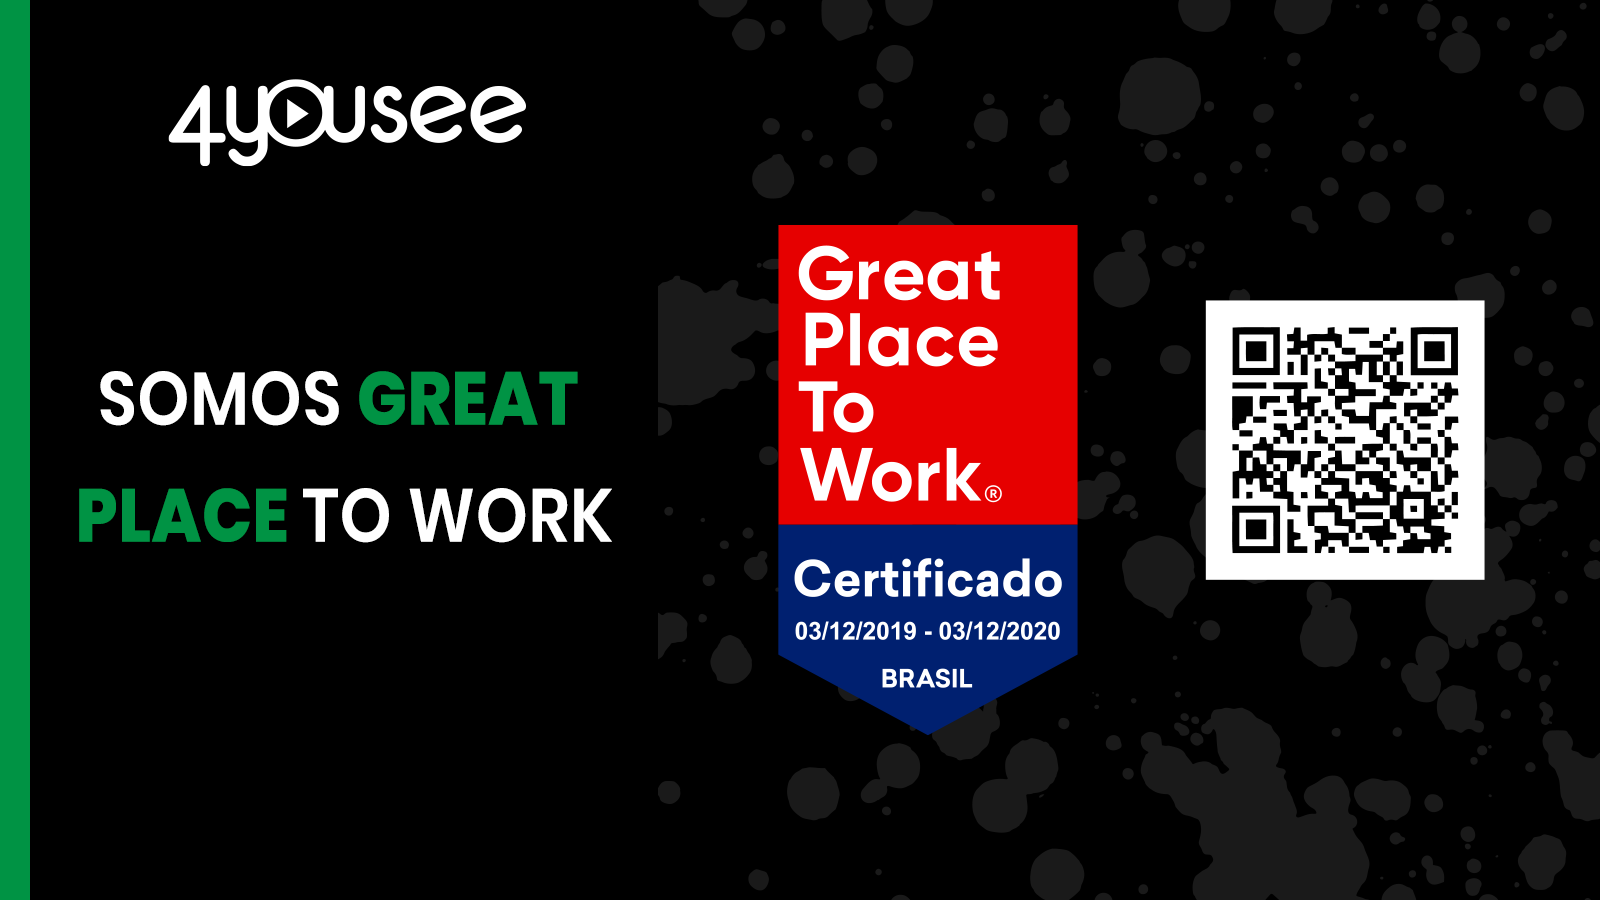 Somos-Great-Place-to-Work